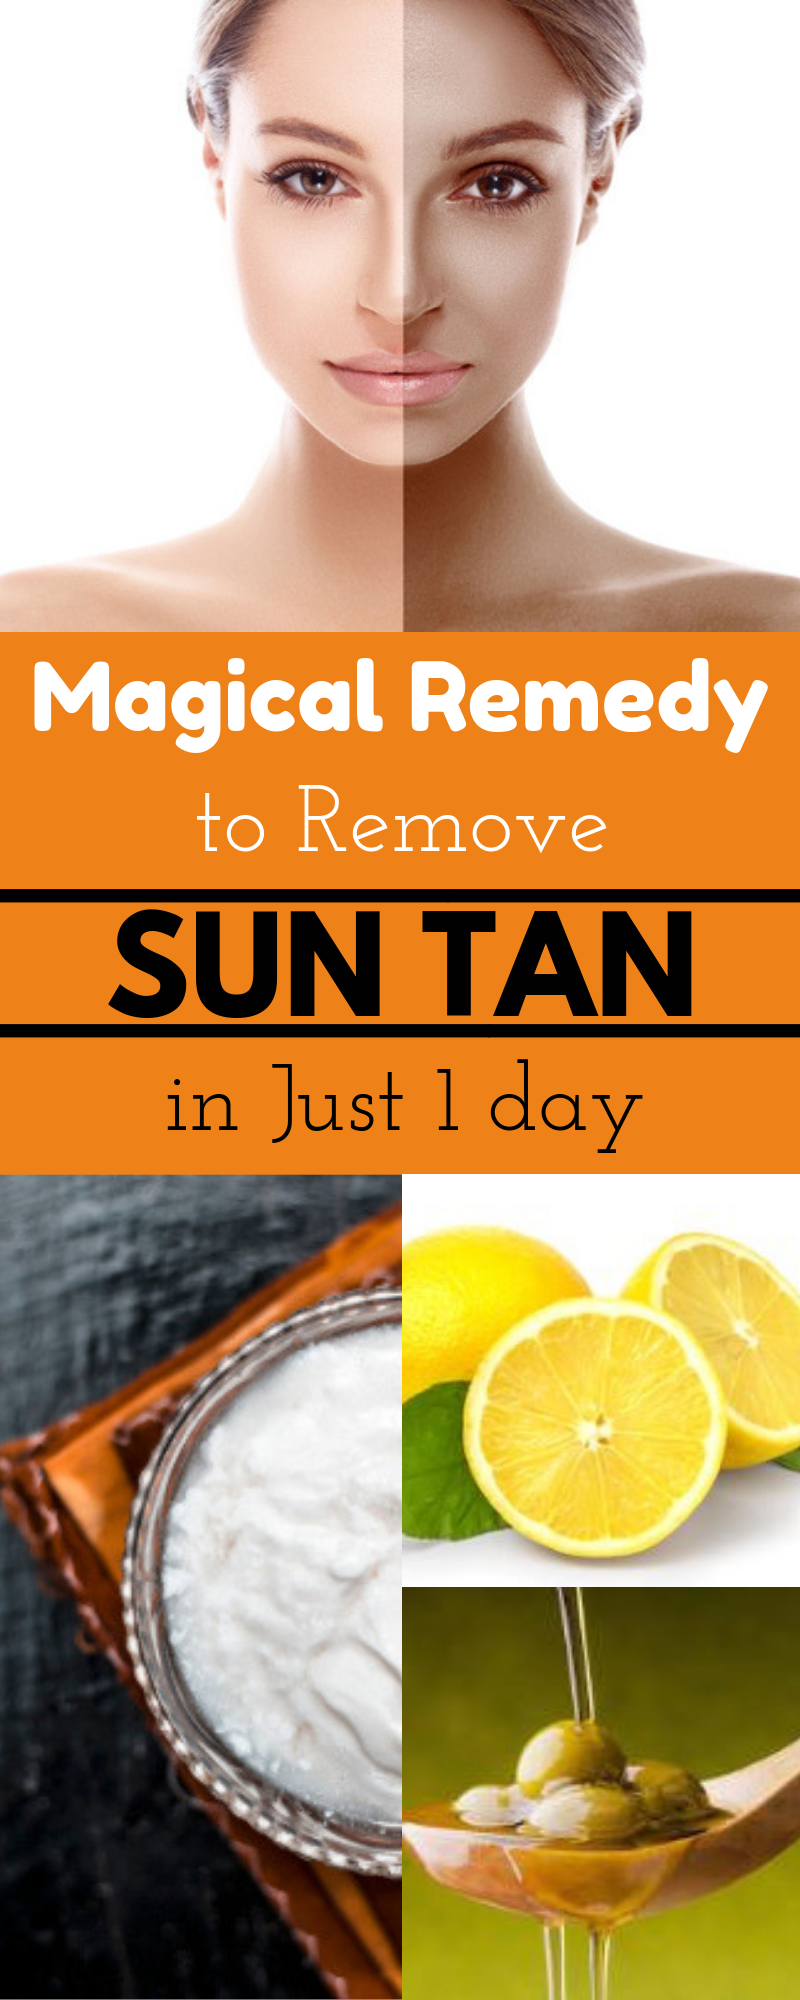 0c1505de855485d1ee1cedb33a22141b - How To Get Rid Of Suntan Naturally At Home